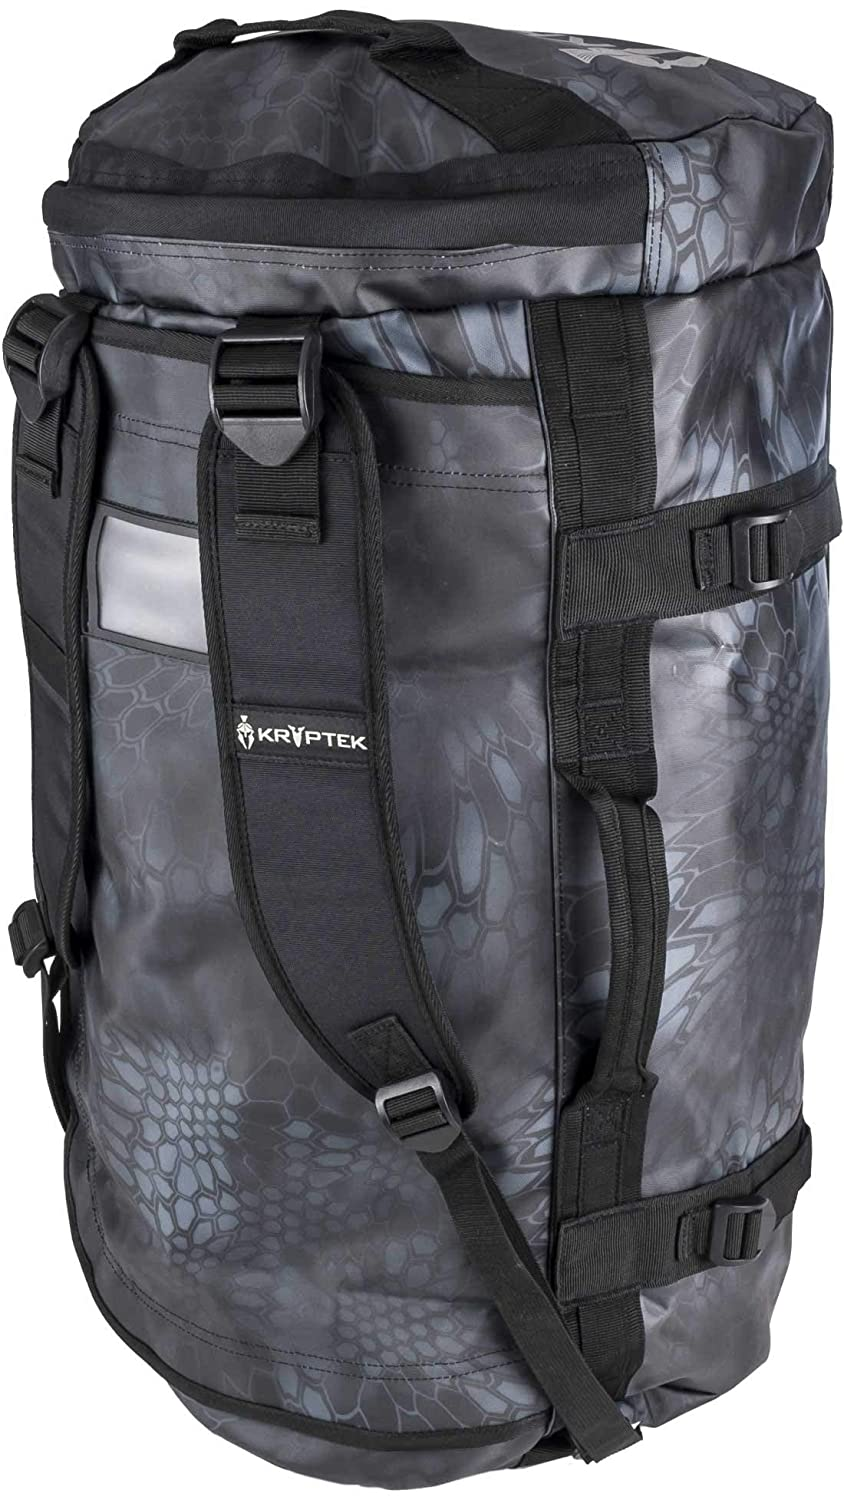 Kryptek Adventure Camo Duffel